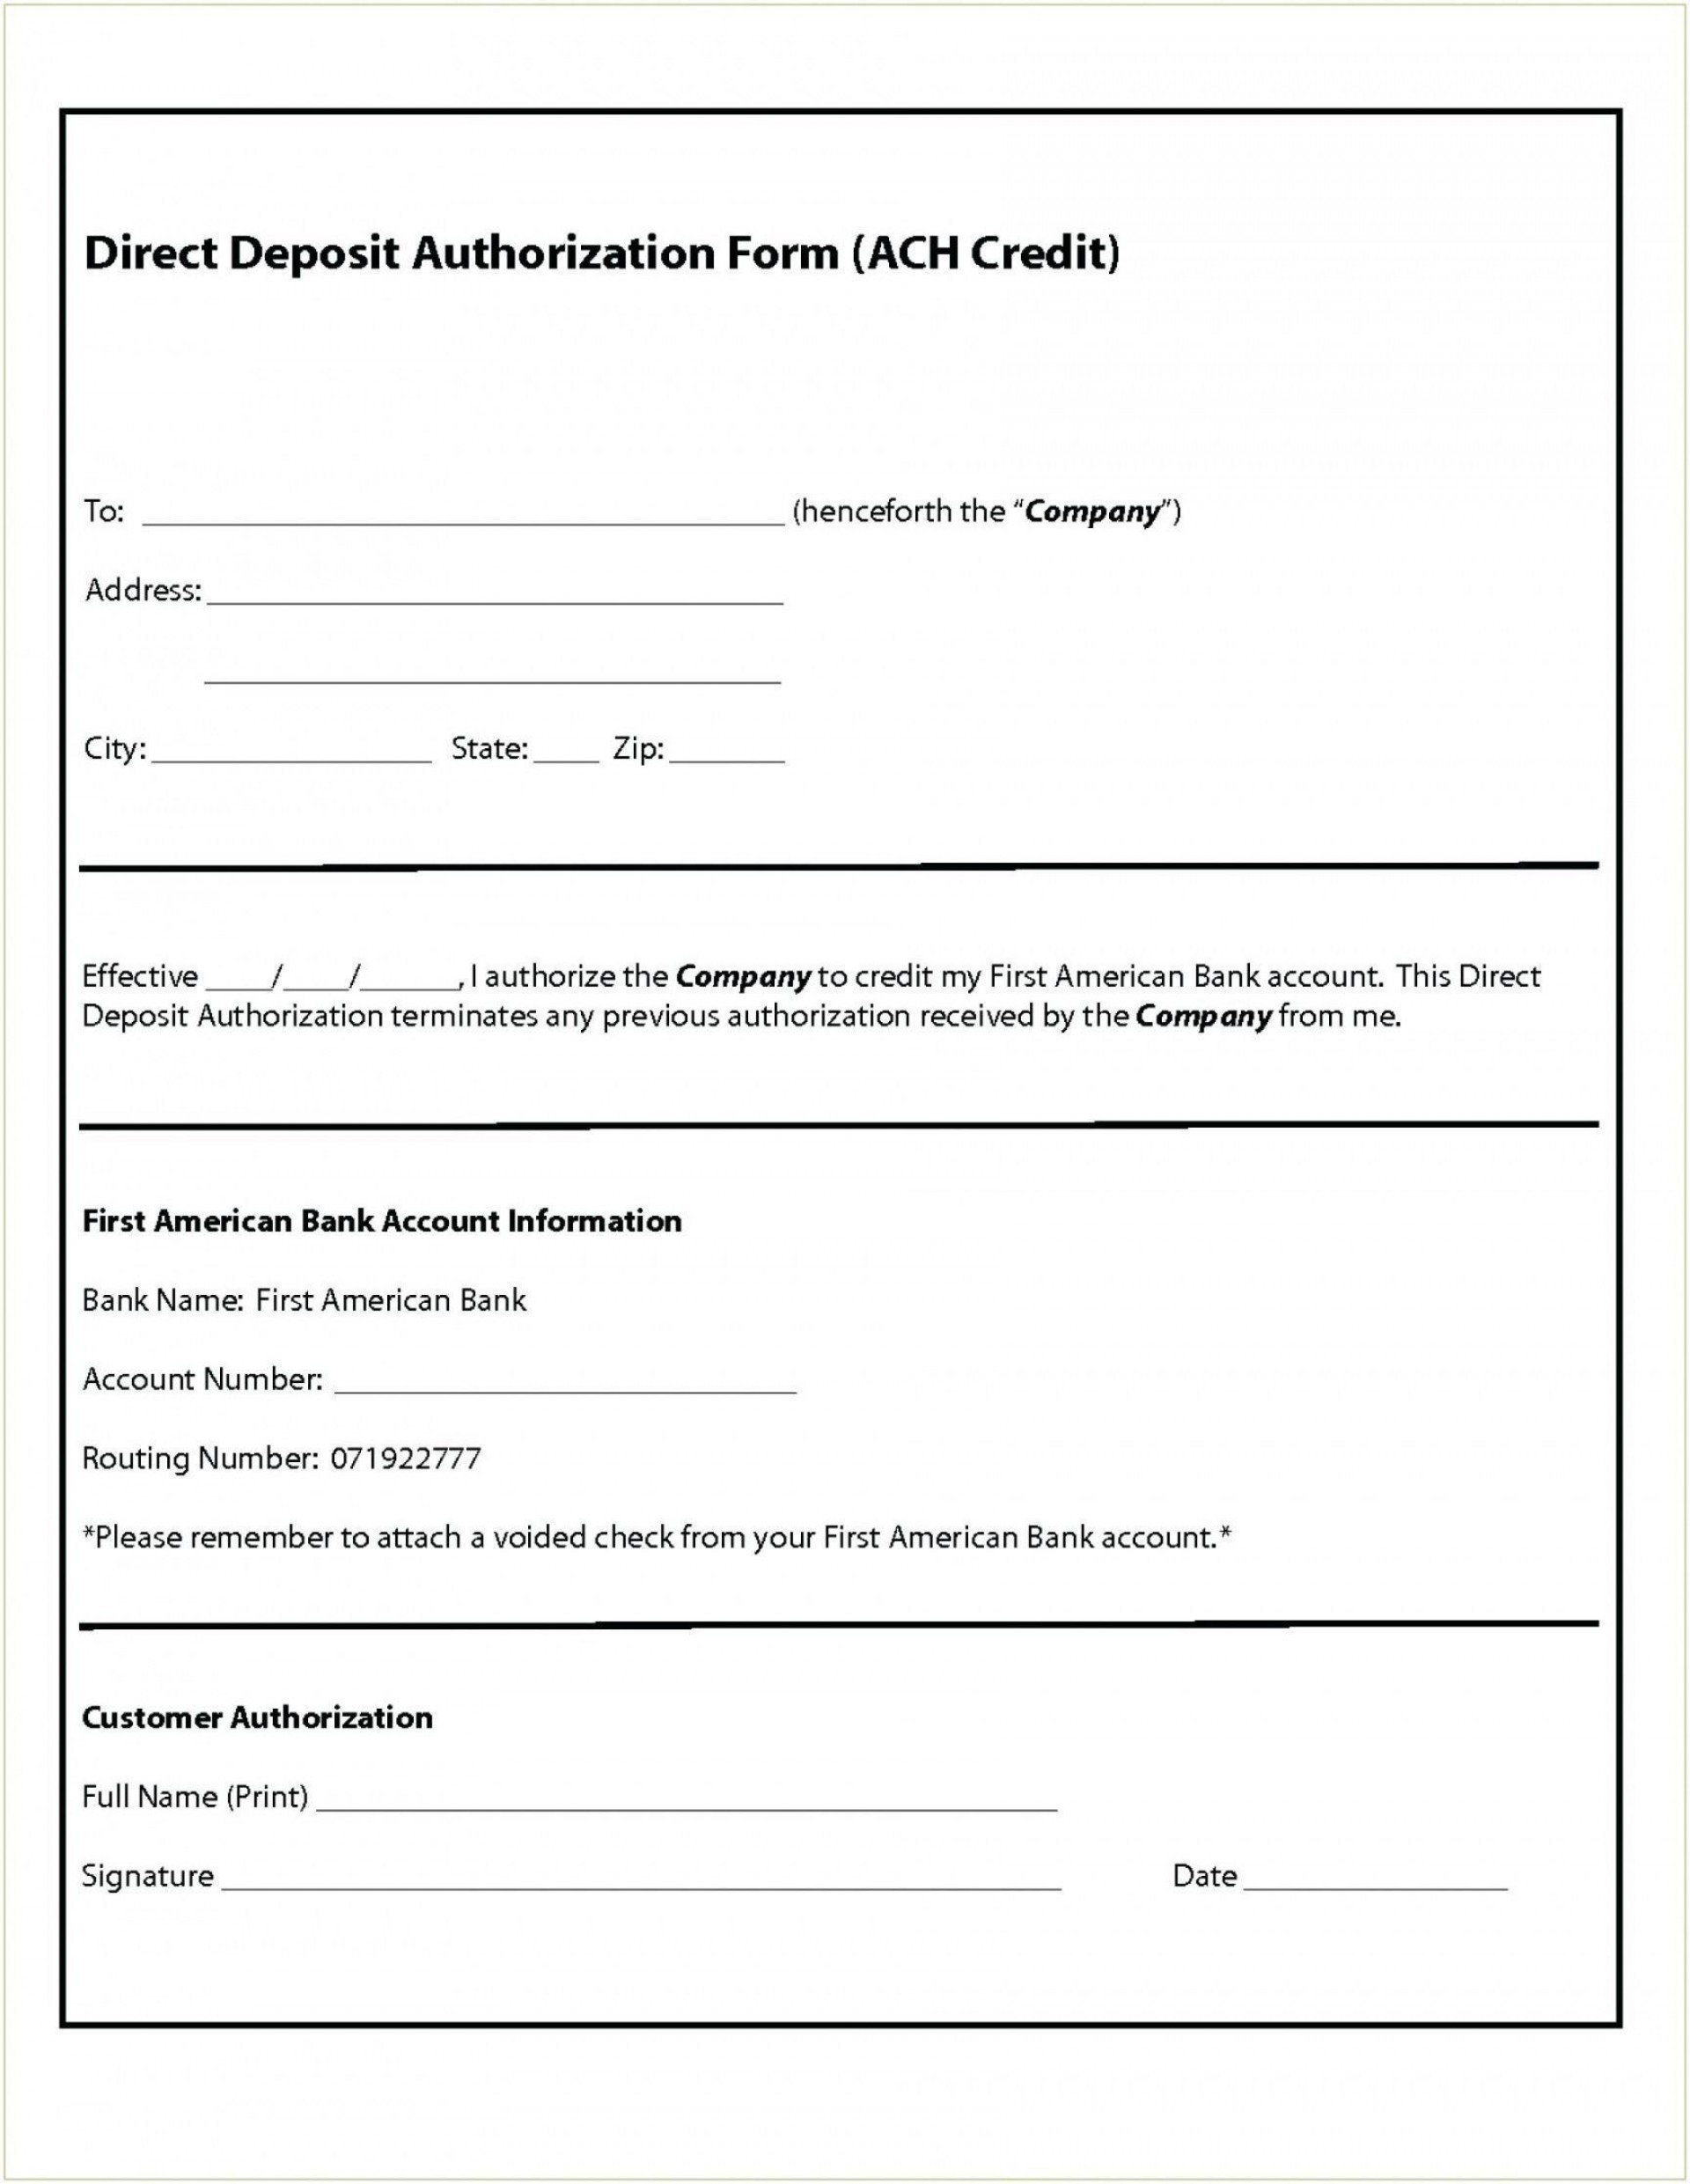 003 Fascinating Direct Deposit Agreement Authorization Form Template Sample 1920